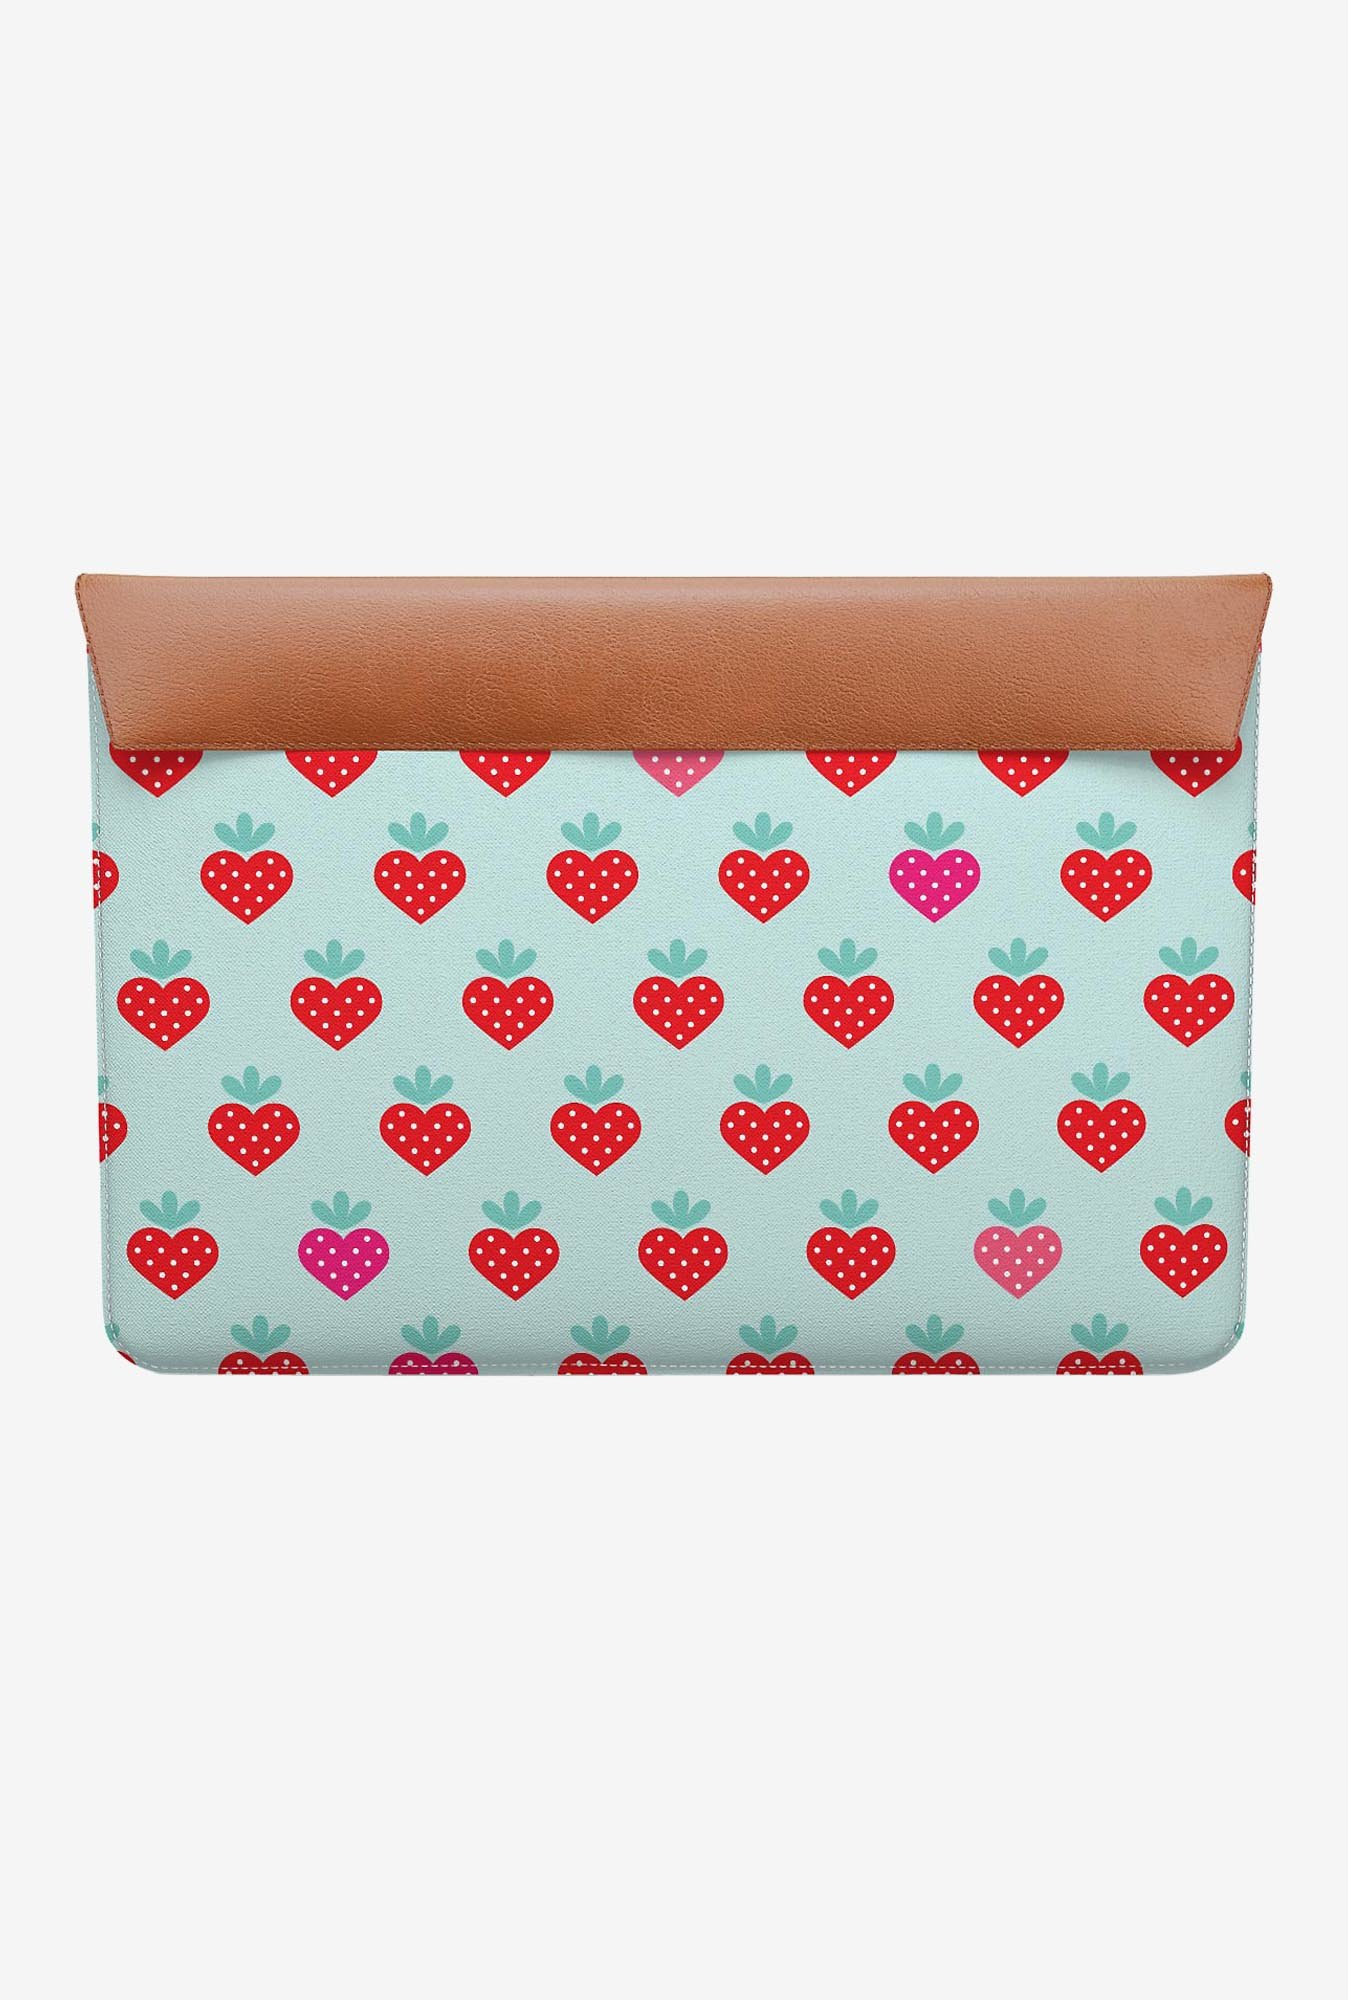 "DailyObjects Strawberry MacBook Air 11"" Envelope Sleeve"